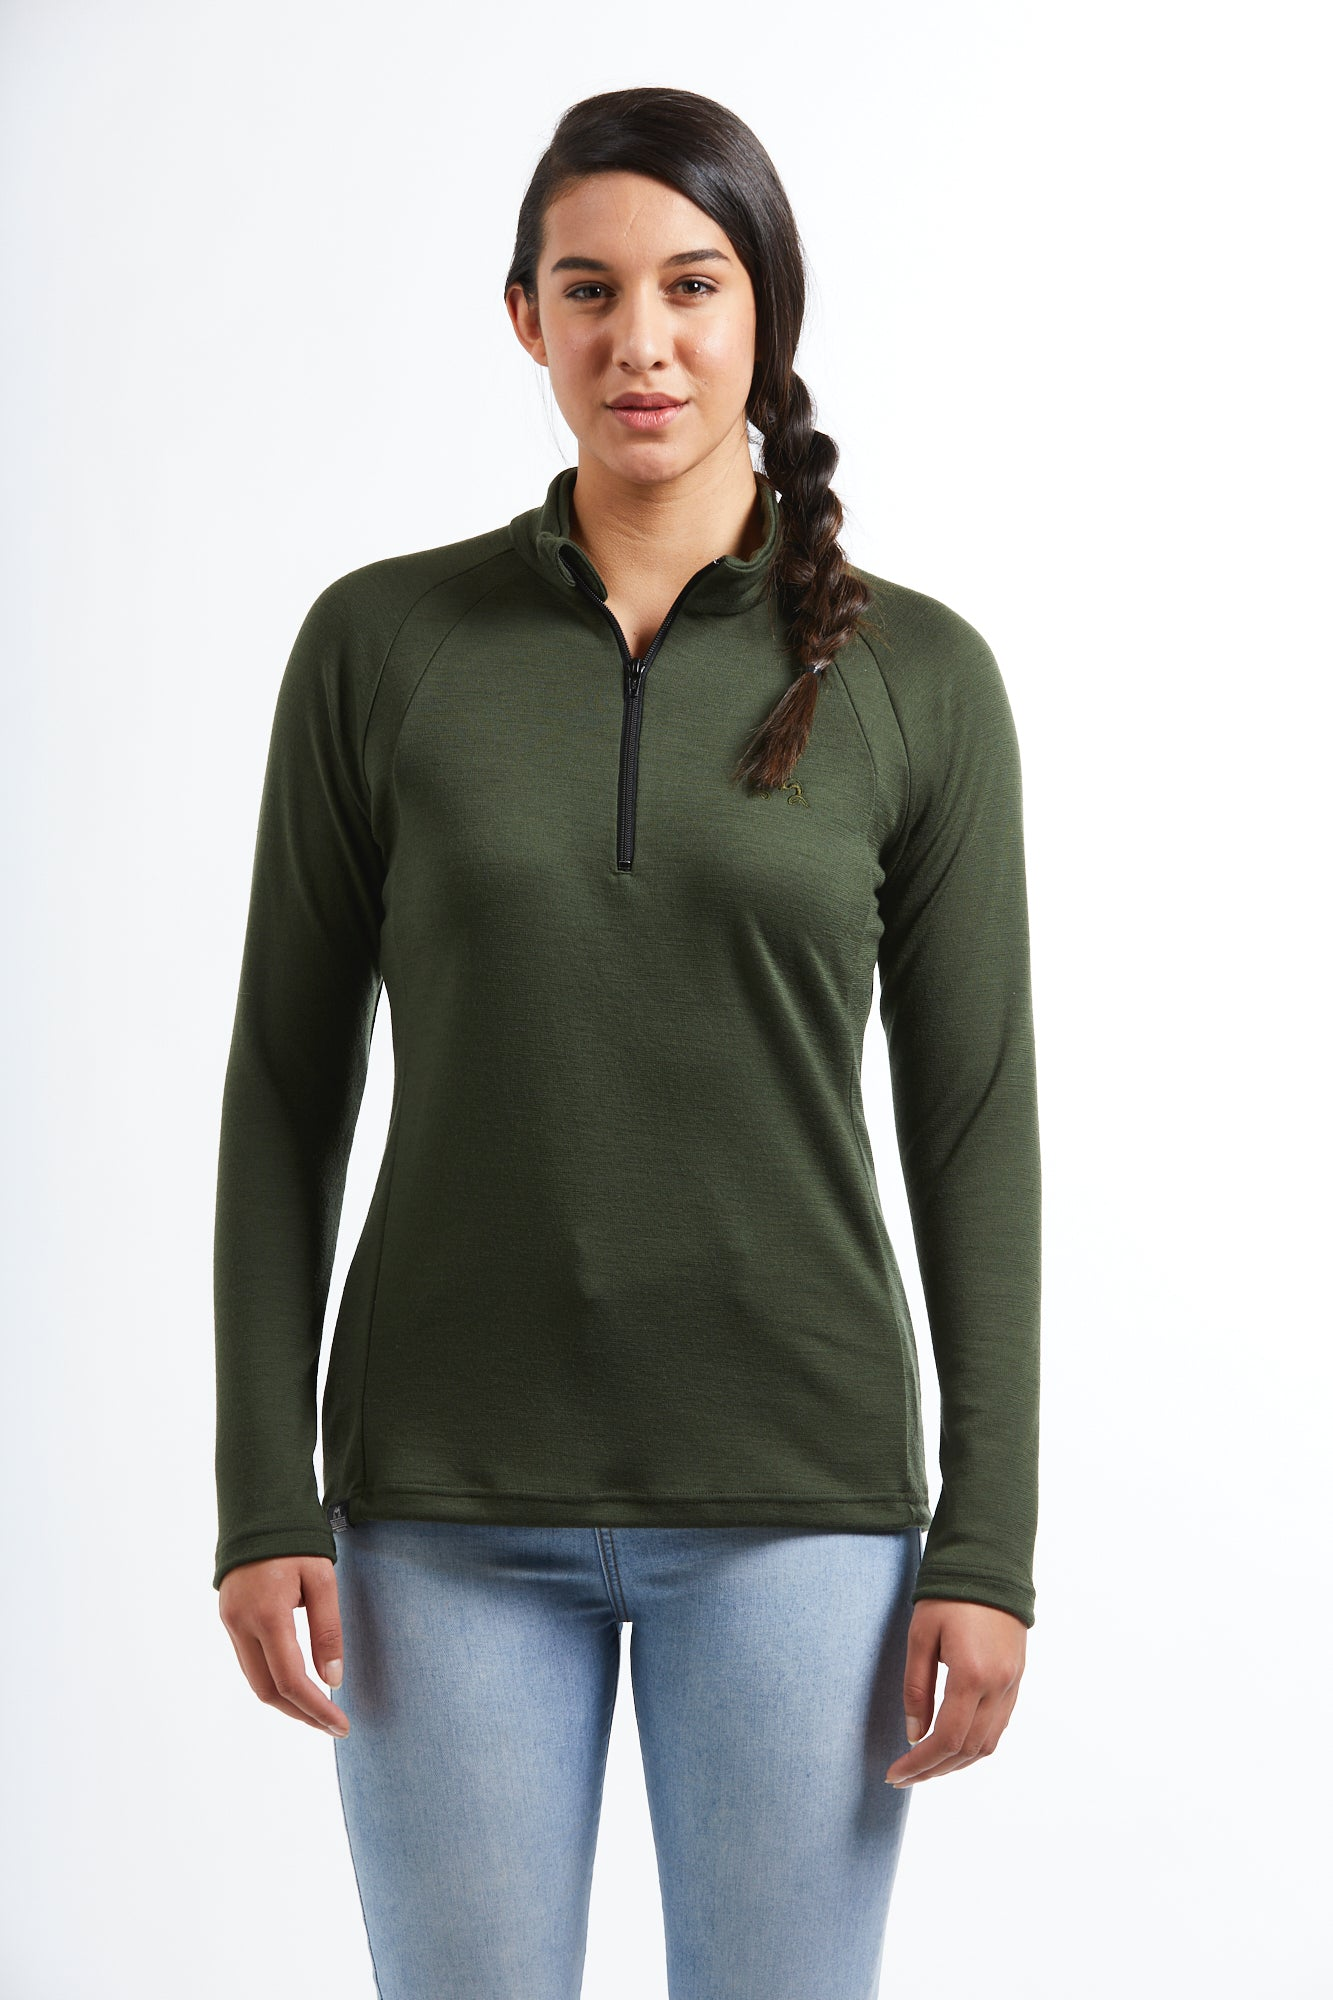 Hilltop Quarter Zip Jersey | Olive | True Fleece New Zealand